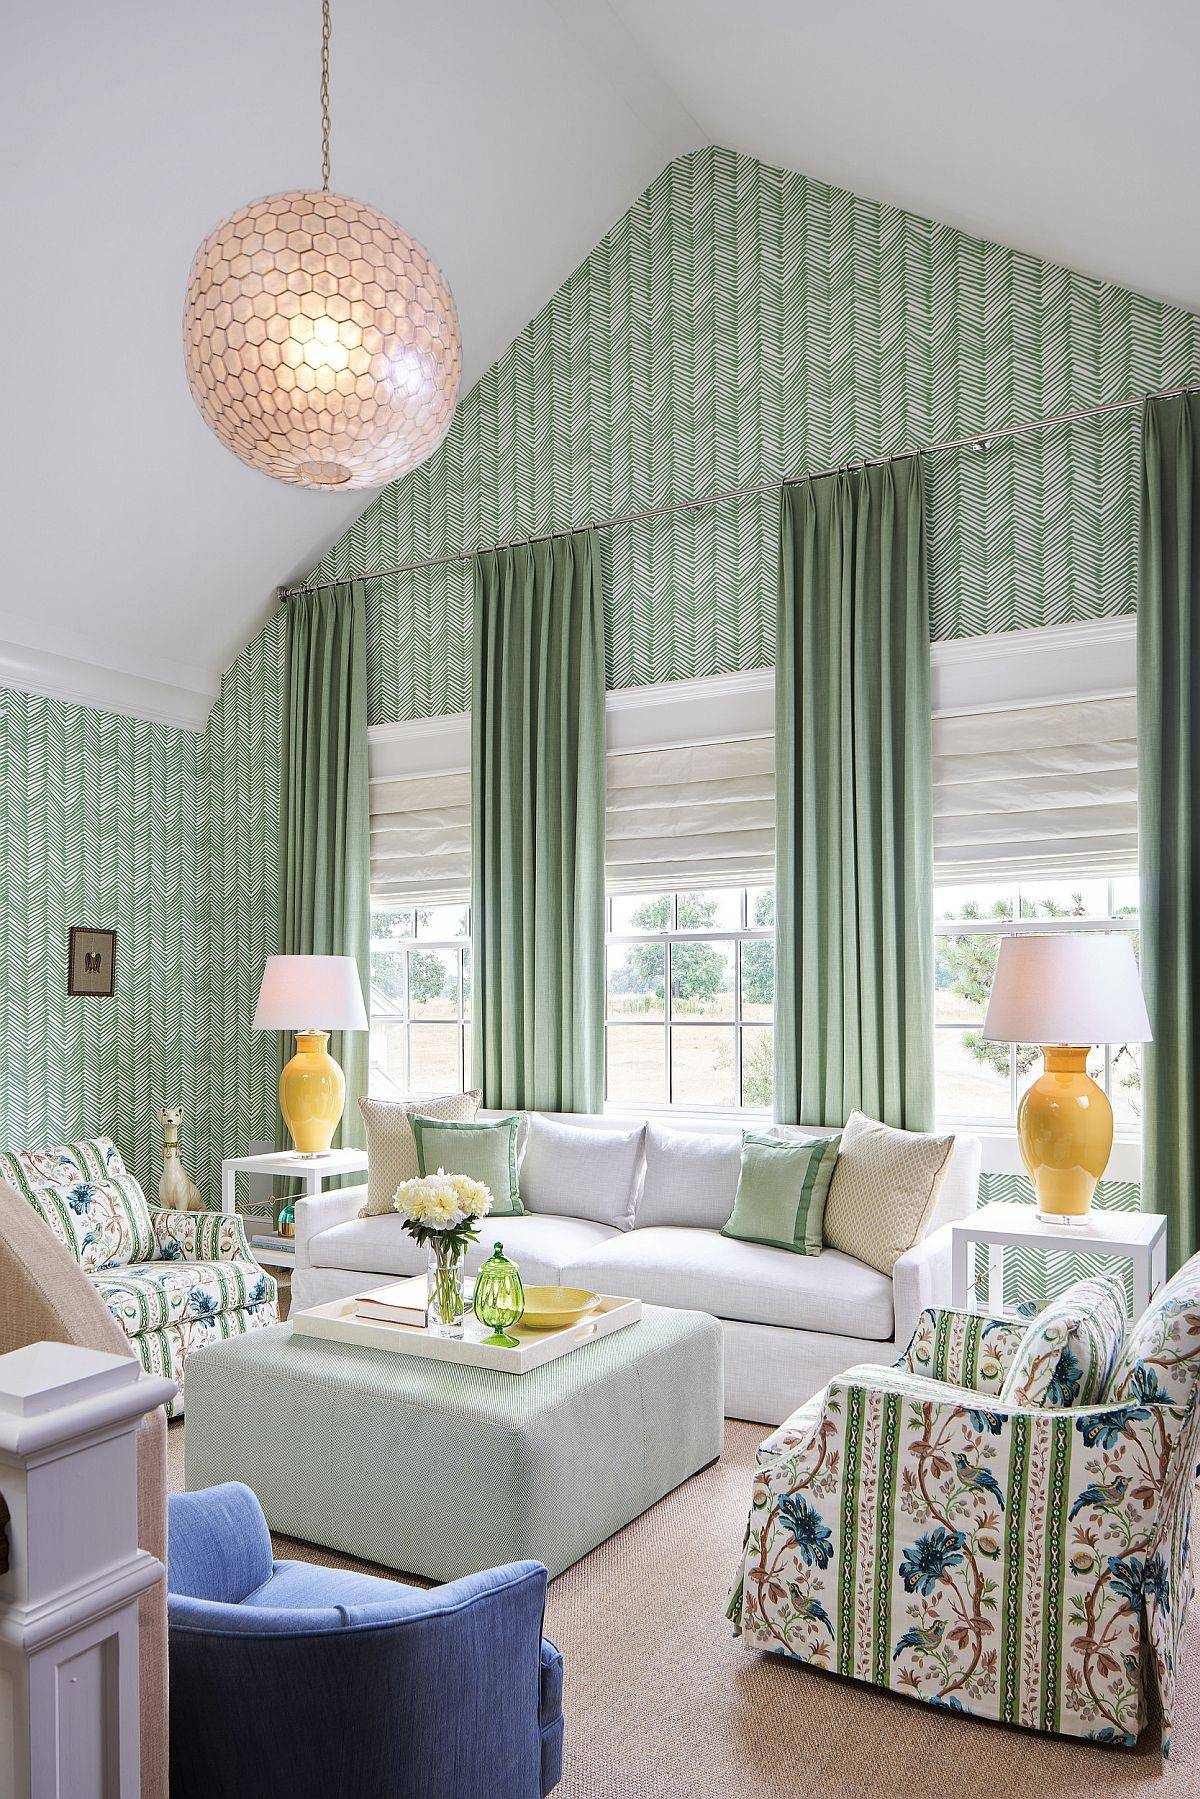 Wallpaper-and-drapes-bring-green-to-this-living-room-of-family-lake-retreat-70646